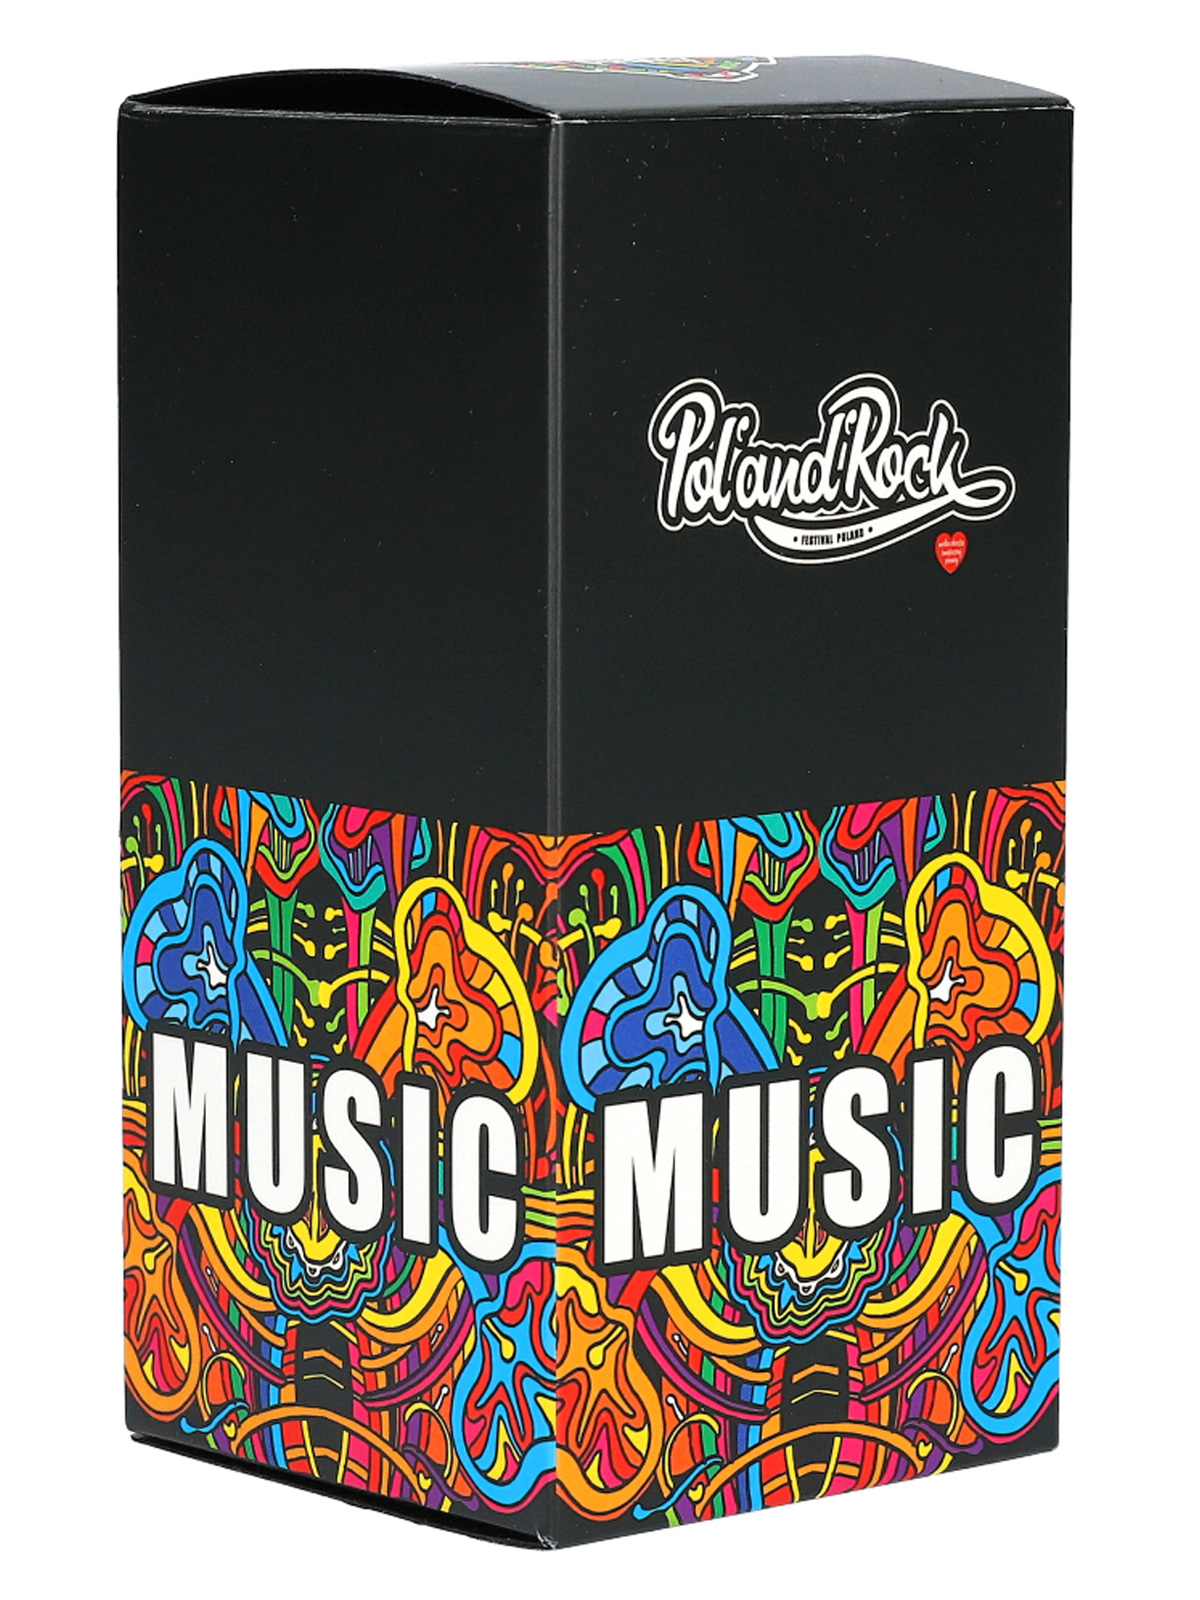 Perfumy - Pol'and'Rock - Music - 50ml